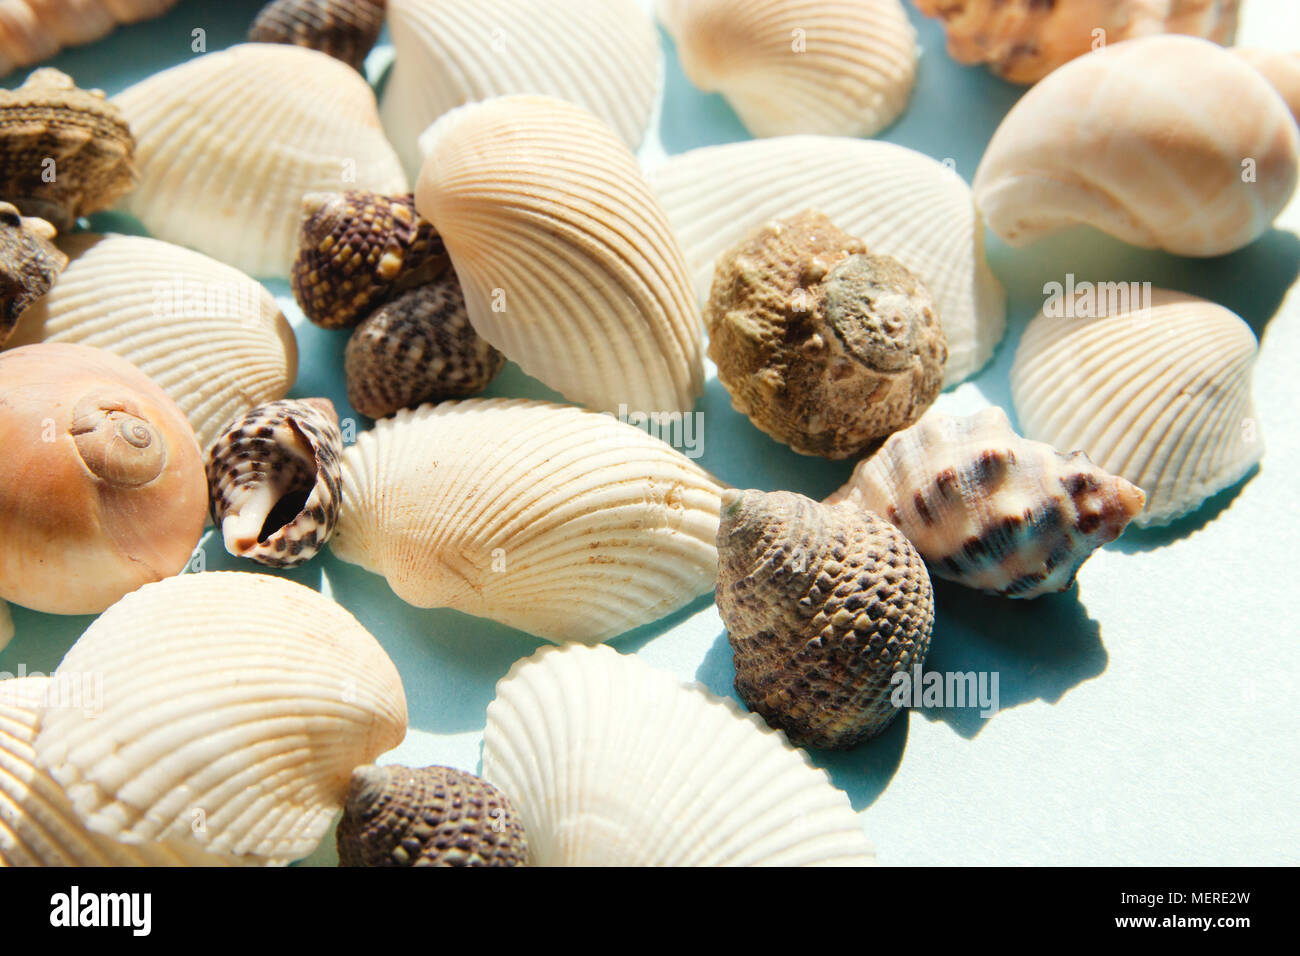 Seashells flat lay pattern on blue background, sea vacation background close up - Stock Image